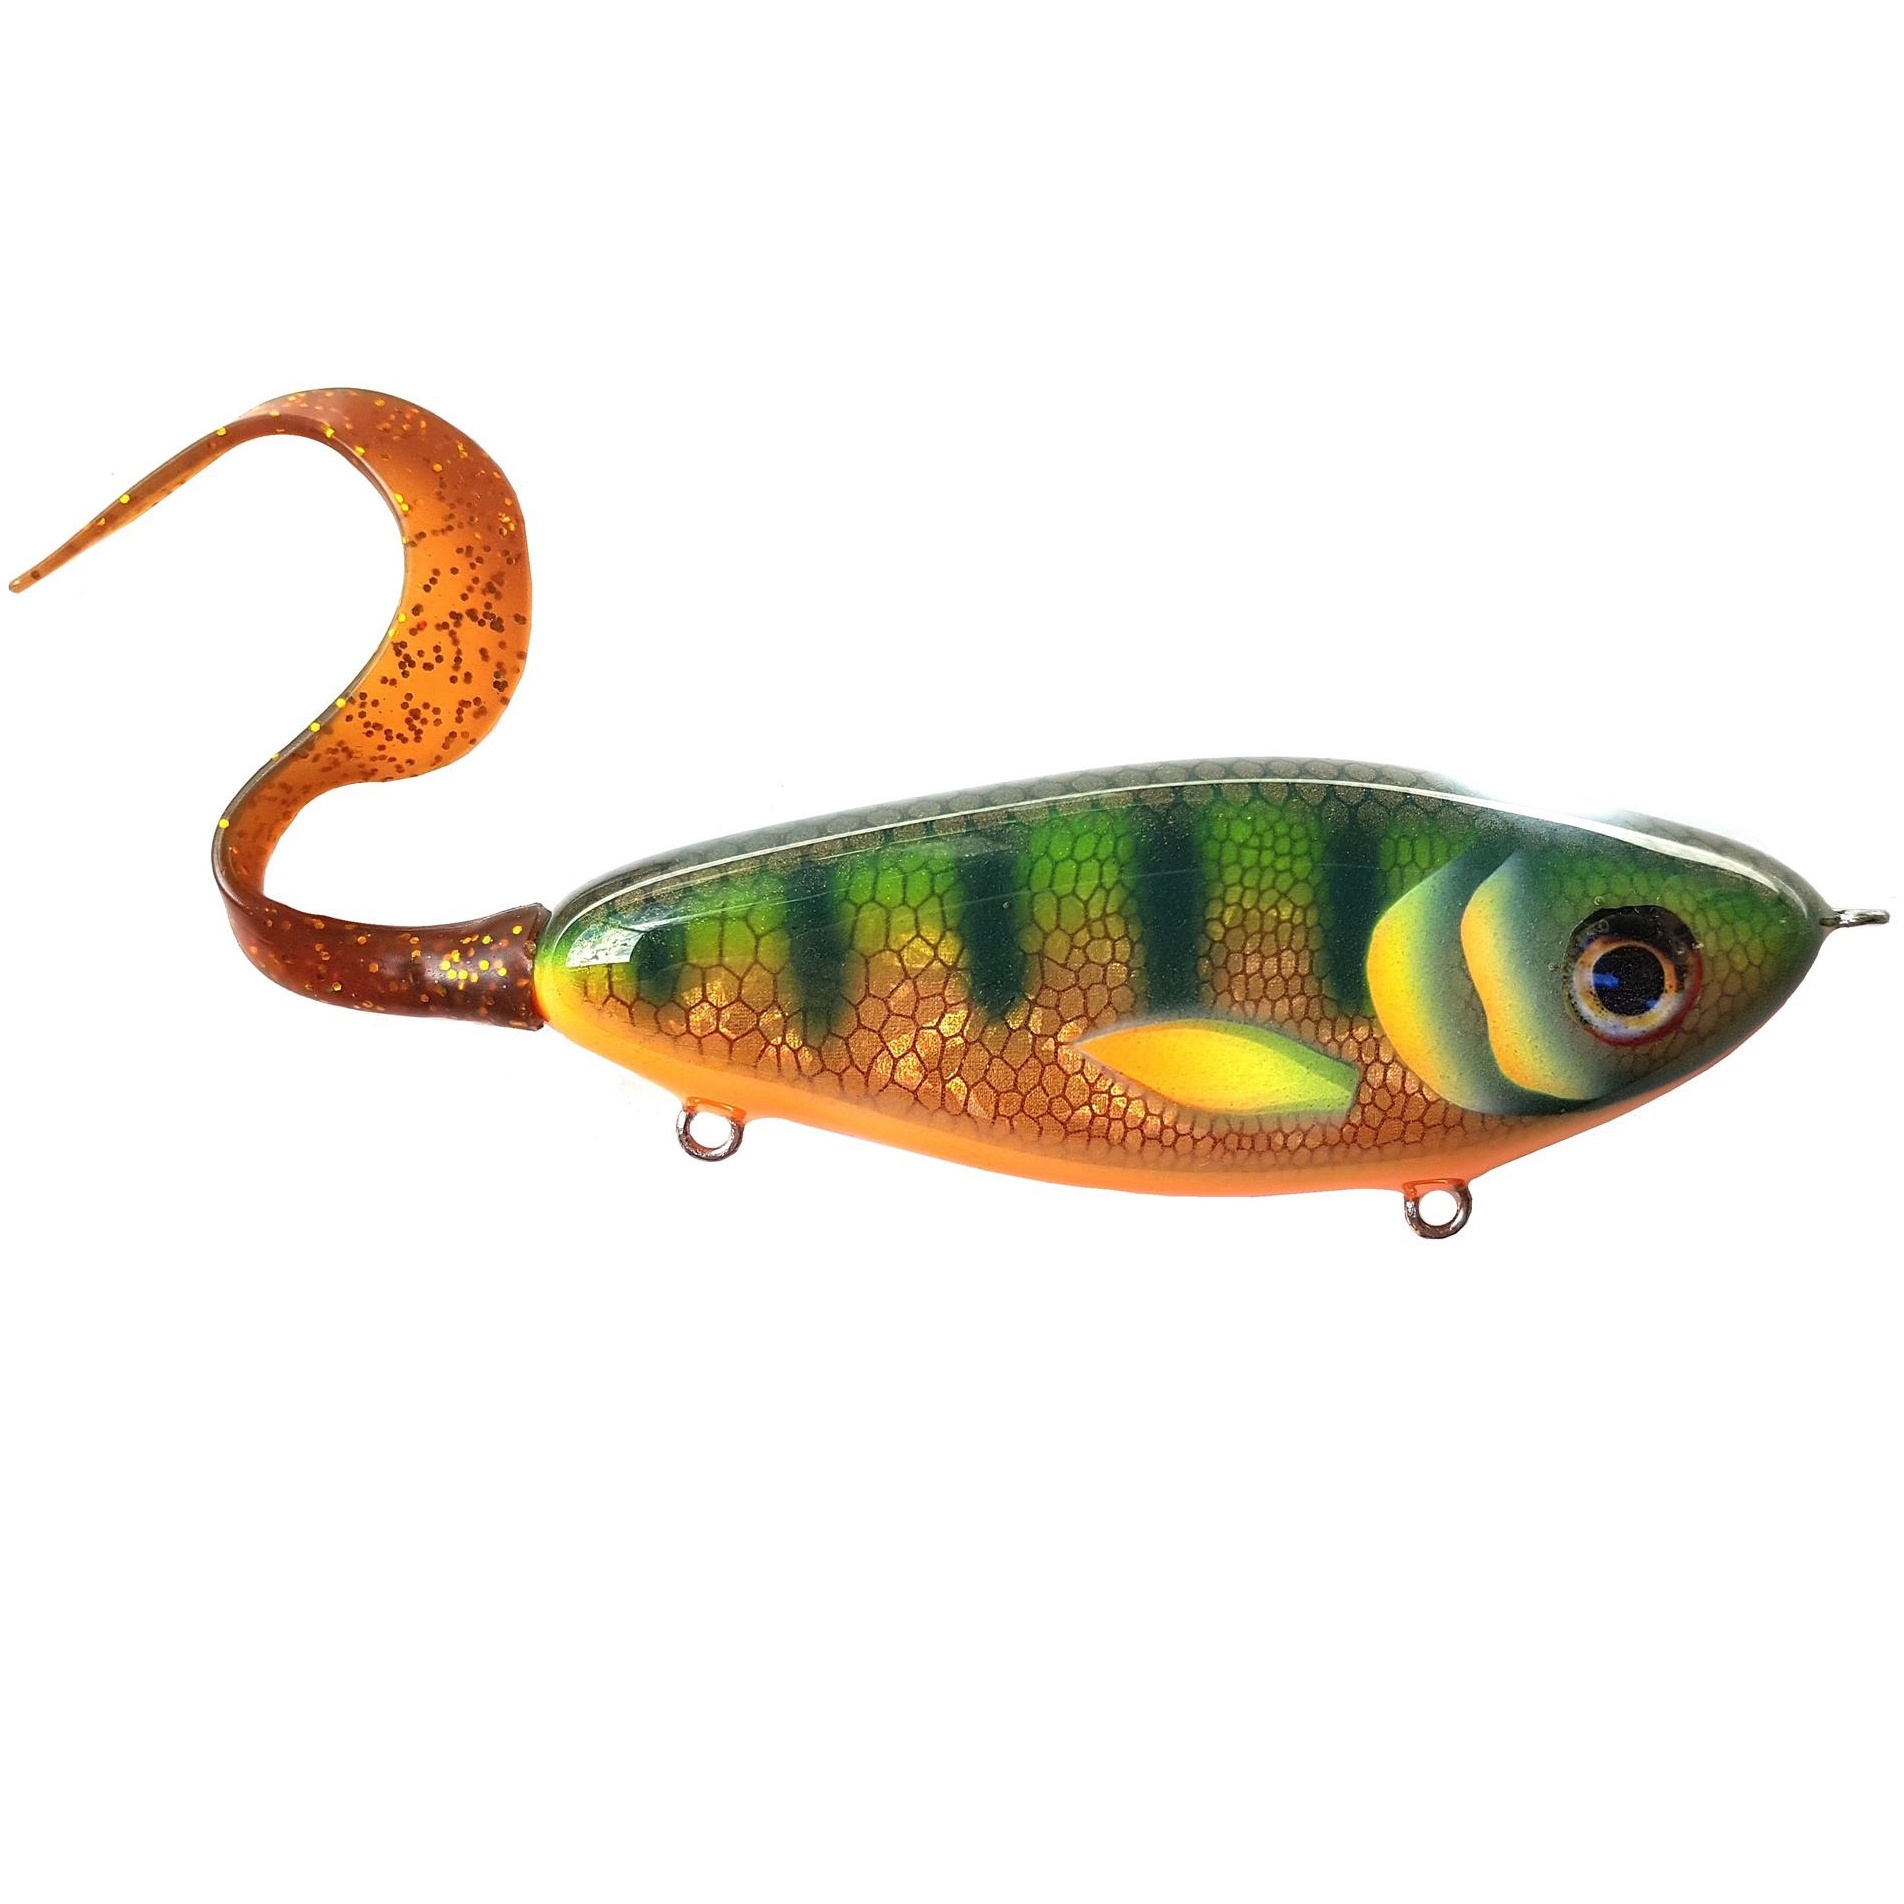 Palych Custom Renegade Petty Perch Tail BAR Perch